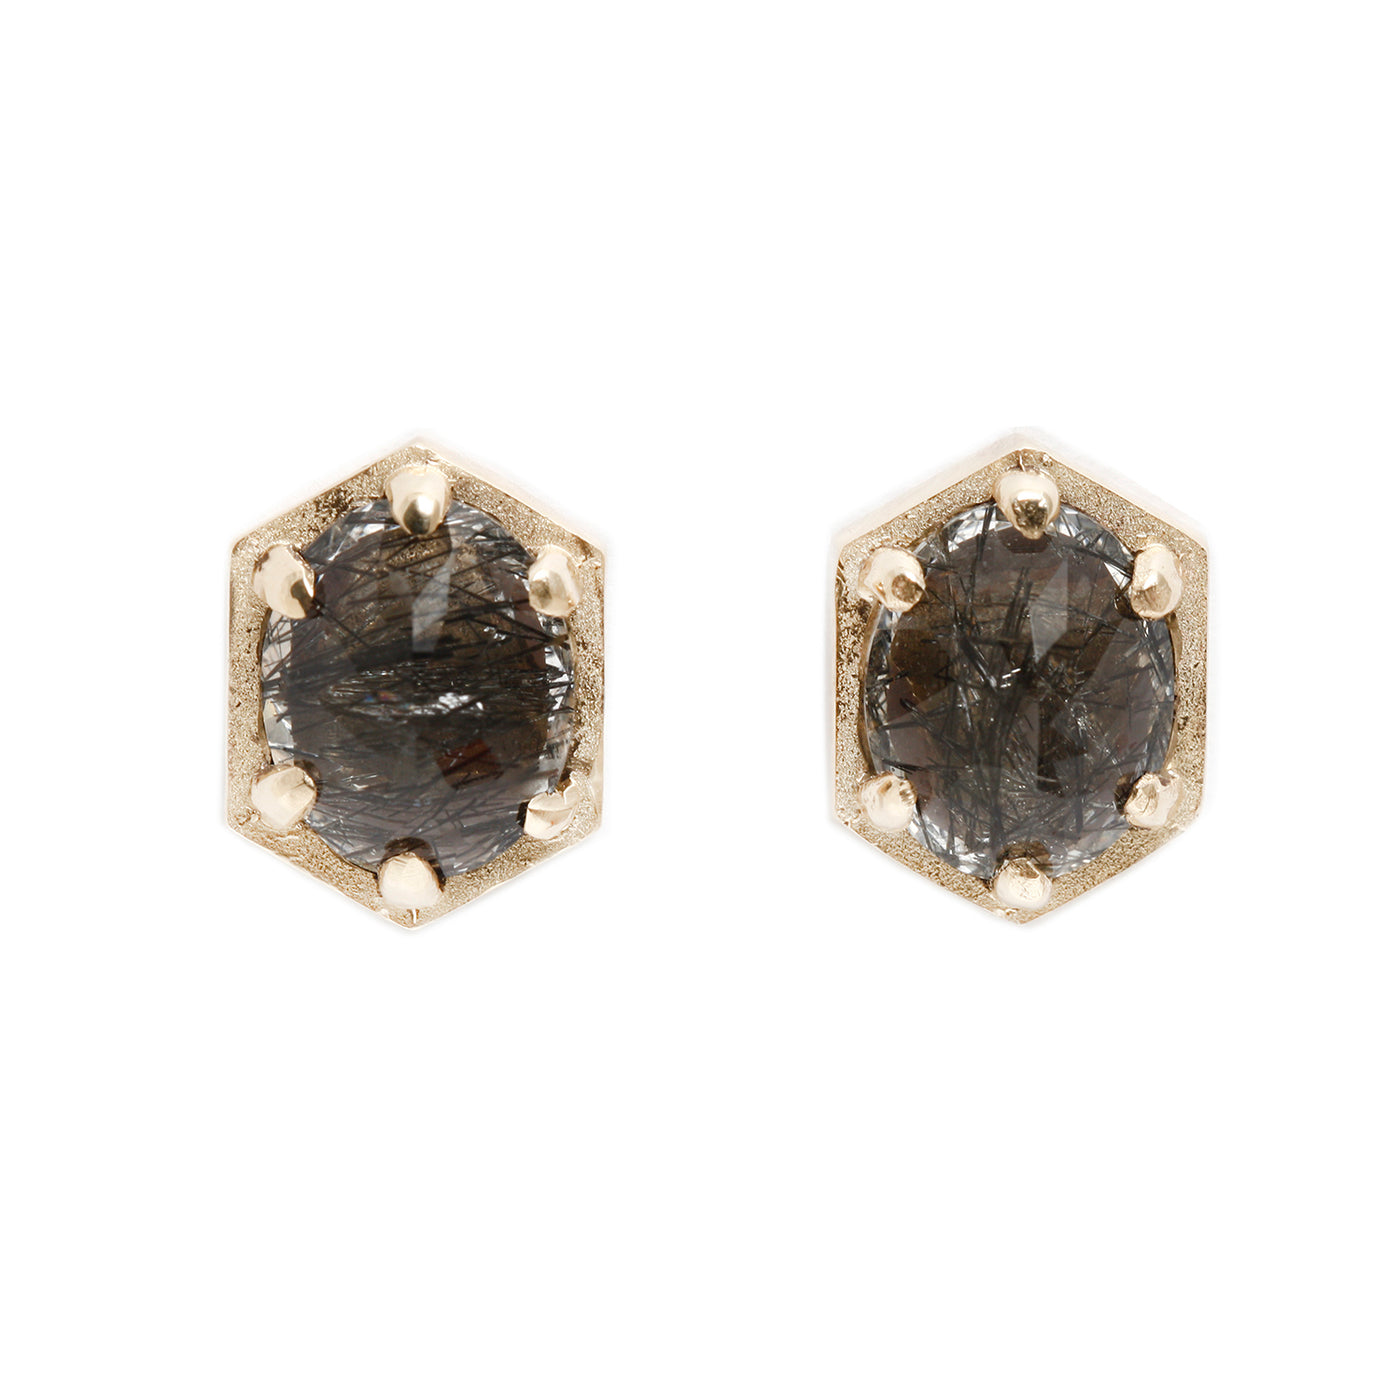 Lauren Wolf Jewelry Large Hexagon Quartz Studs